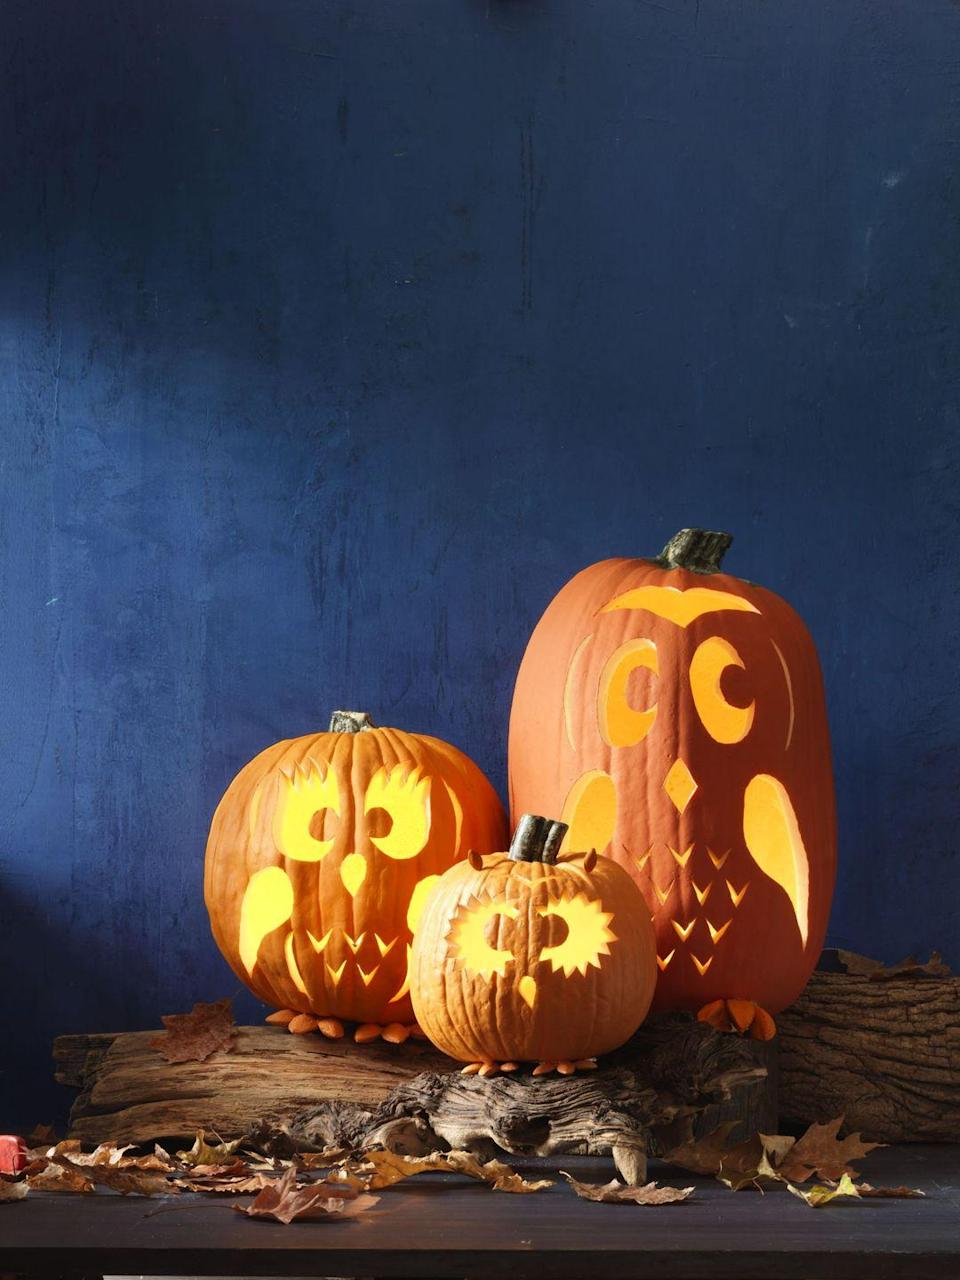 """<p>This family of birds is a literal hoot. Carve out their cute expressions using <a href=""""https://www.womansday.com/home/crafts-projects/g950/funny-pumpkin-carving-ideas/?slide=32"""" rel=""""nofollow noopener"""" target=""""_blank"""" data-ylk=""""slk:free templates"""" class=""""link rapid-noclick-resp"""">free templates</a>, and then attach hand-painted nuts for tiny ears and feet. </p>"""